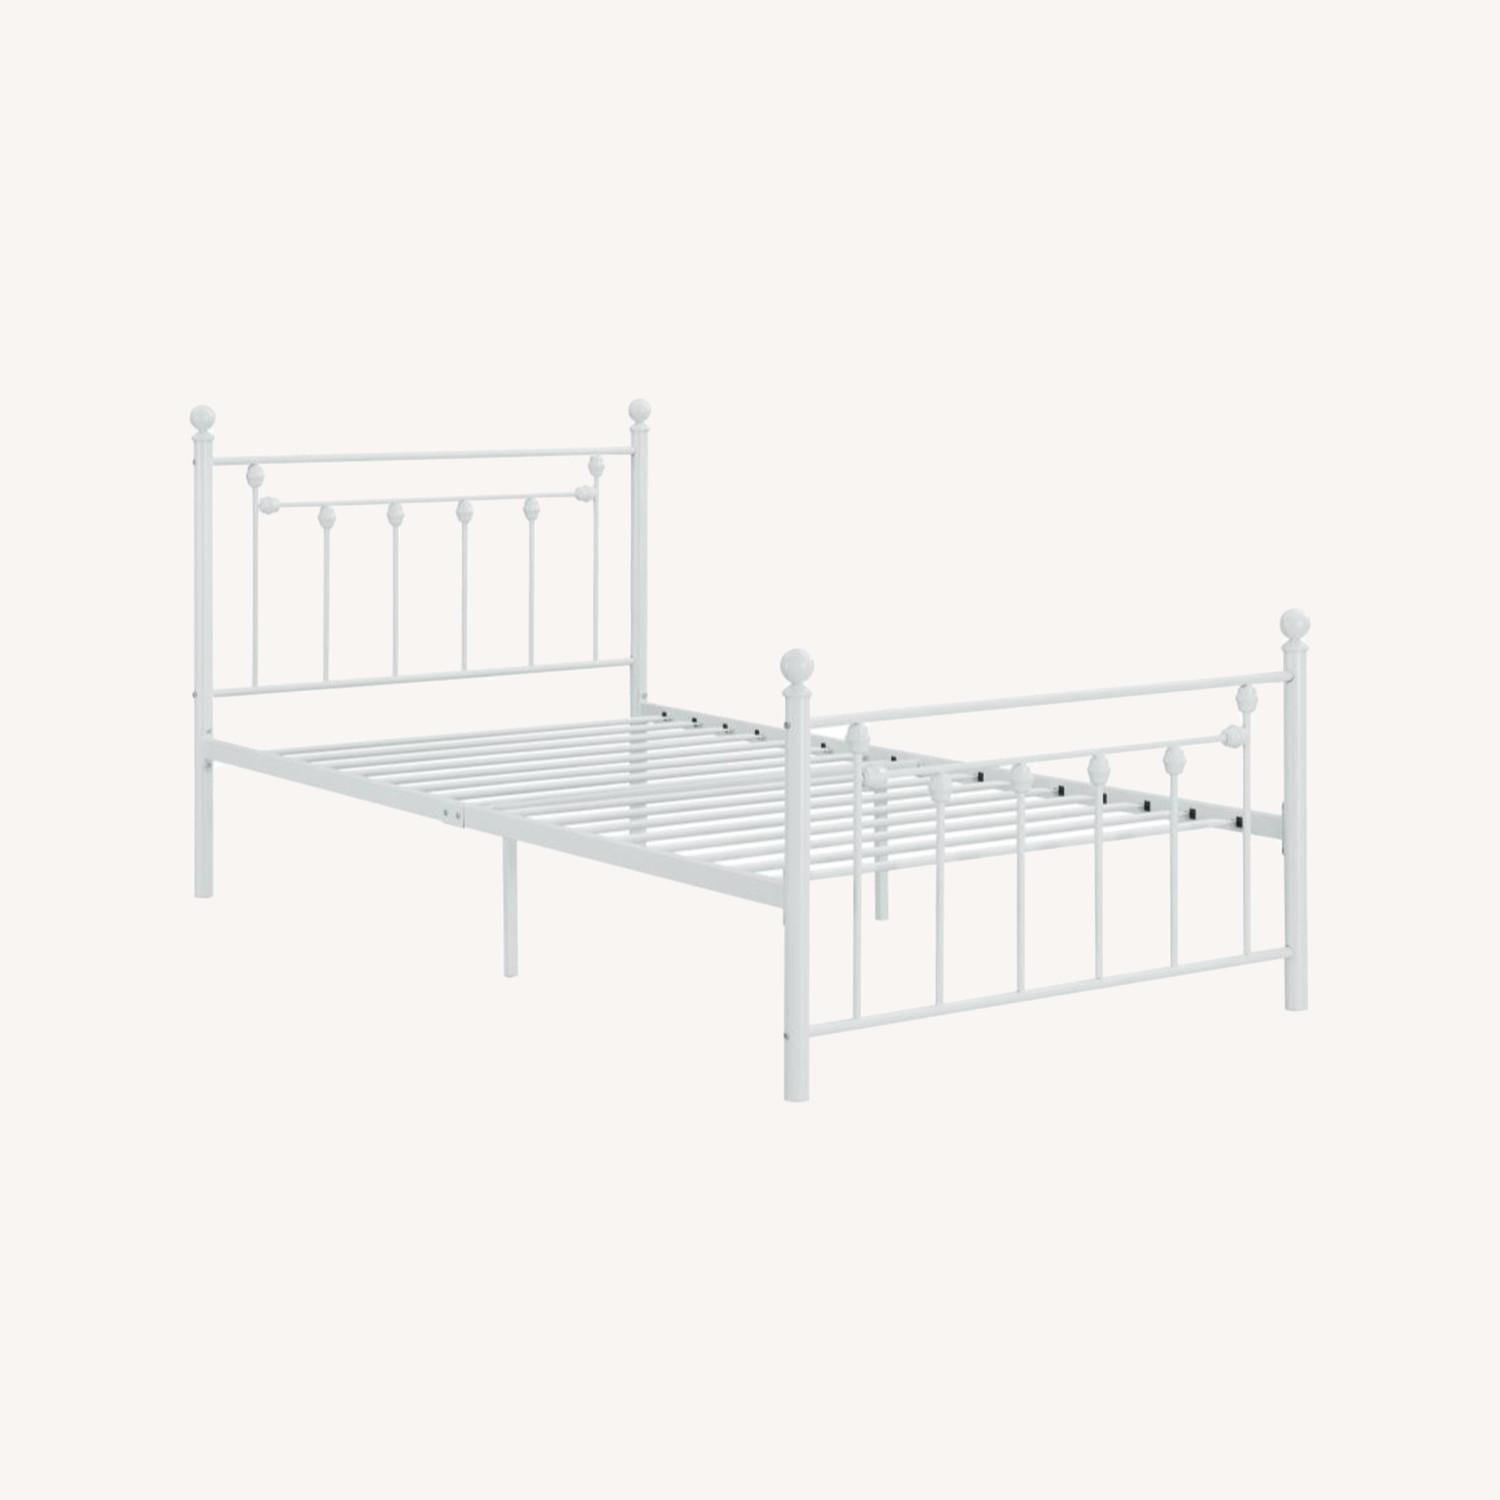 Full Bed In Matte White Powder Coated Finish - image-4